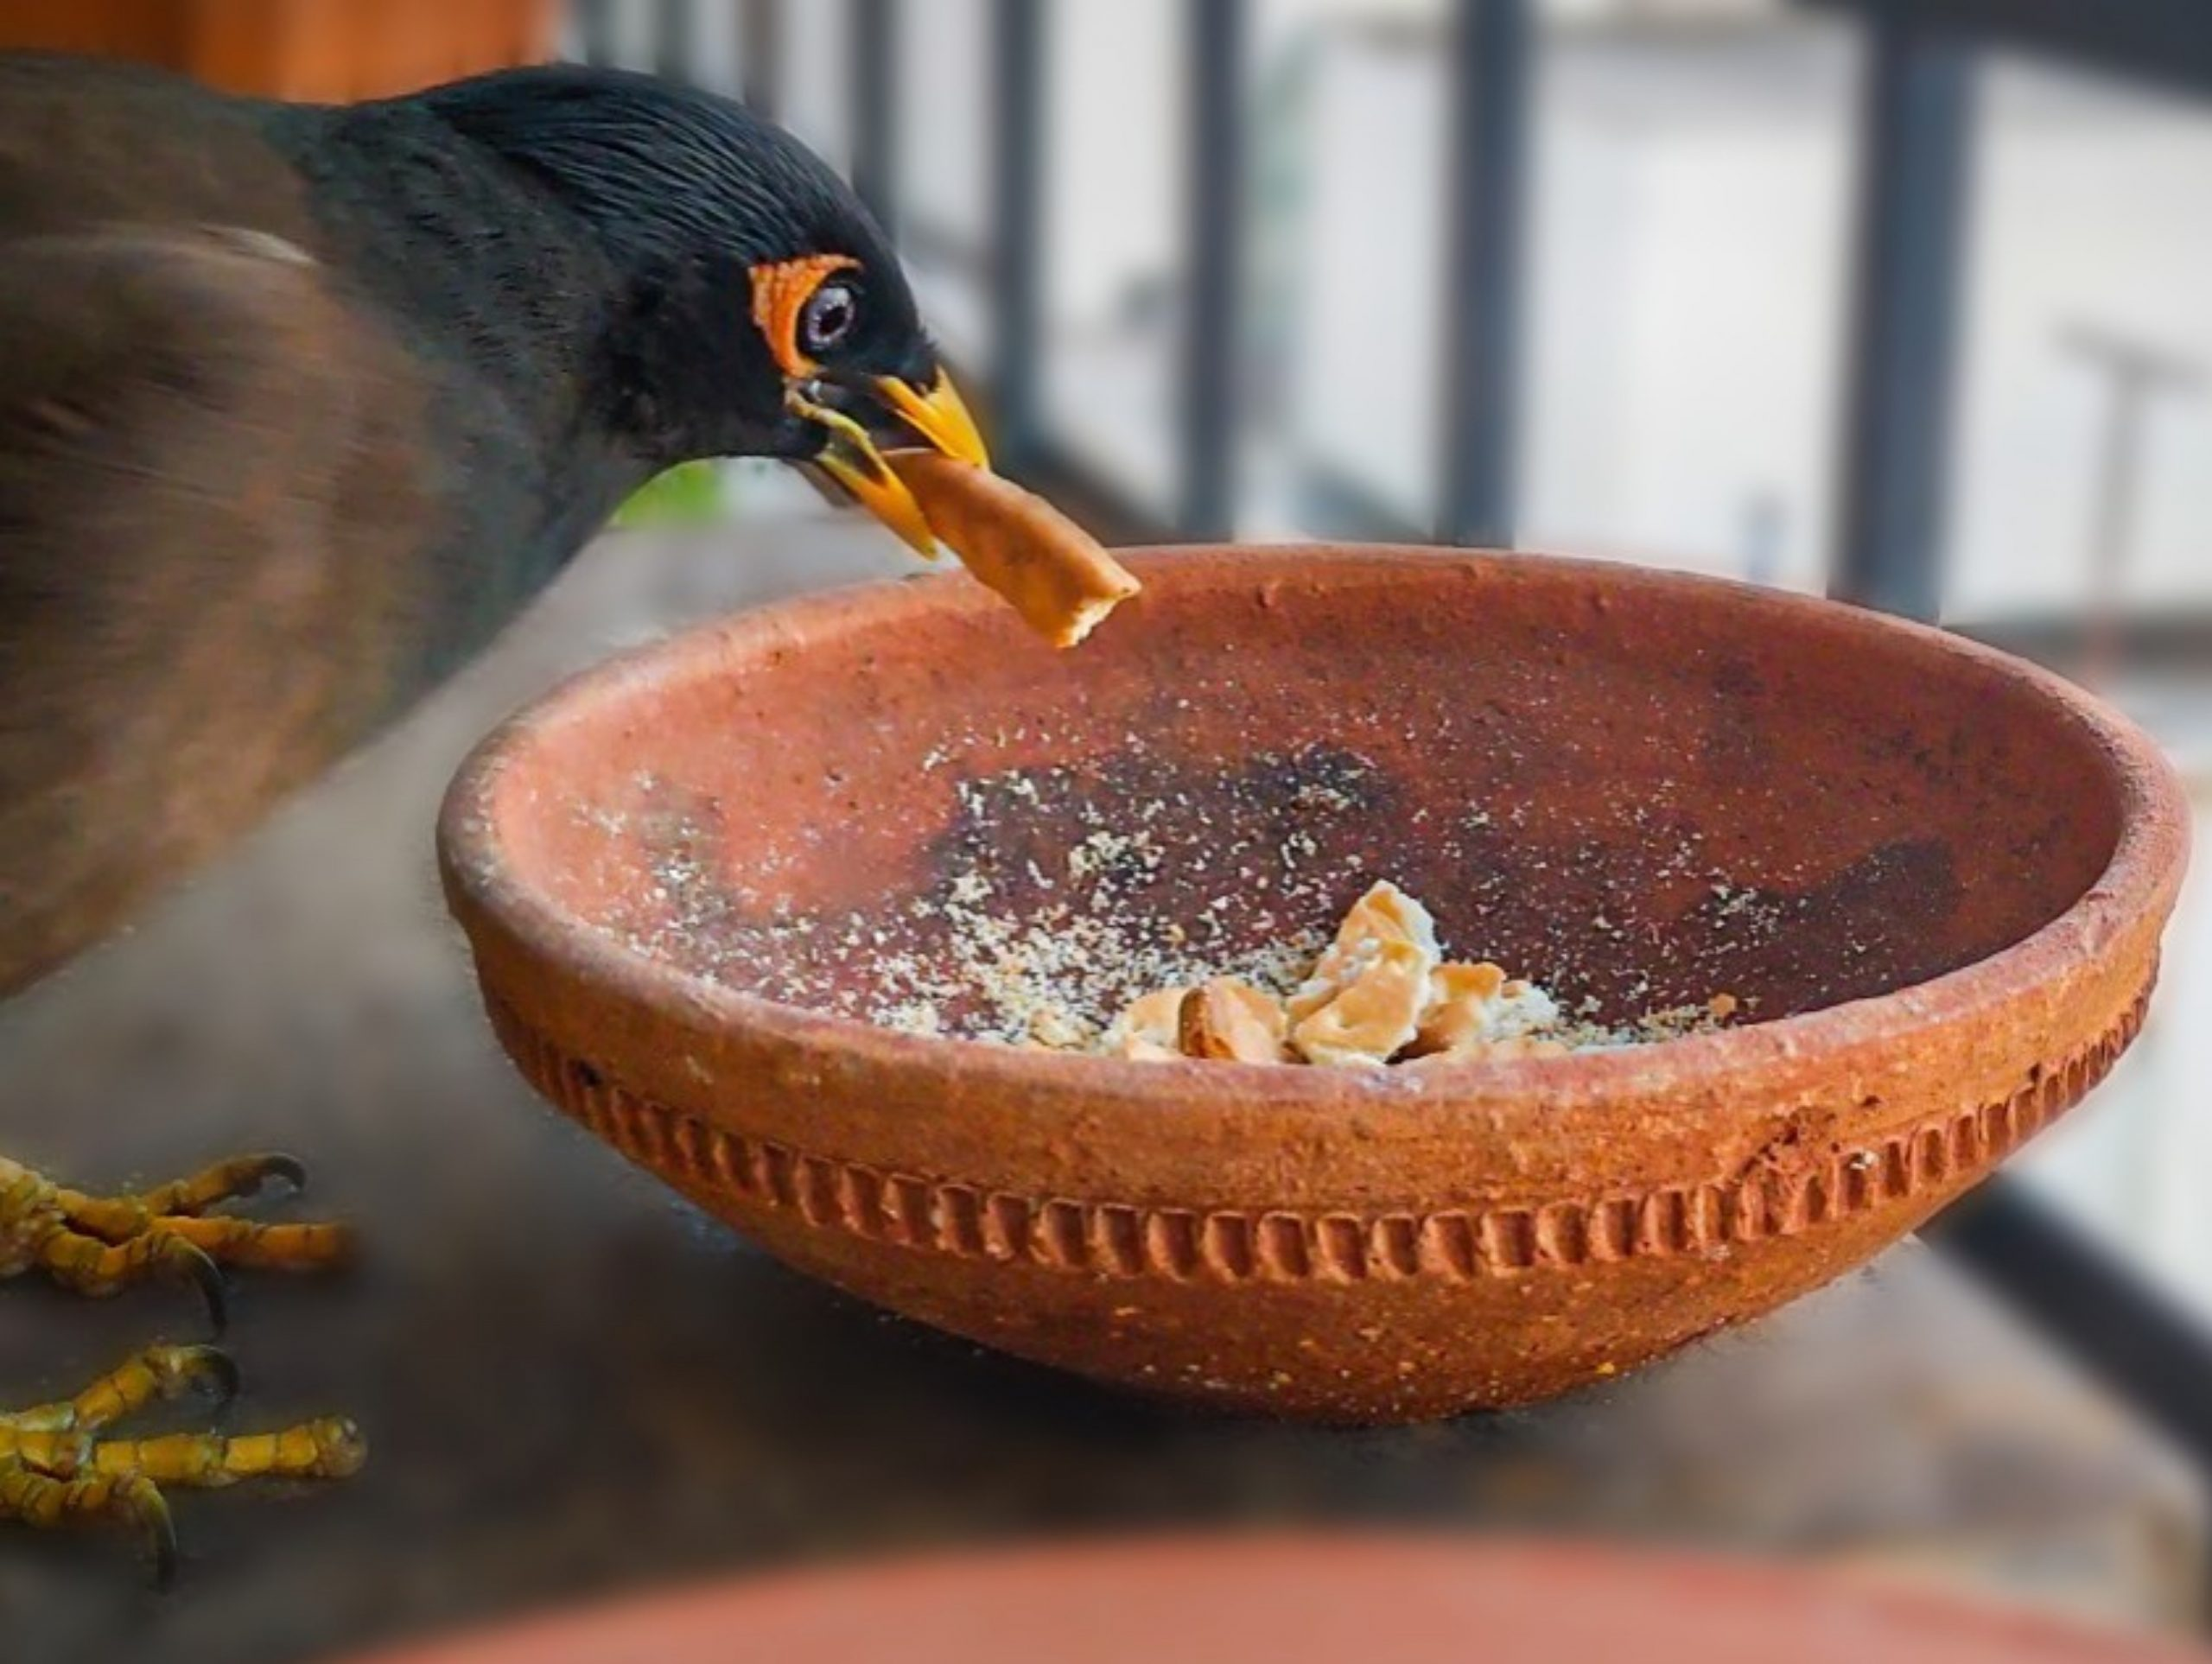 Bird eating from the bowl